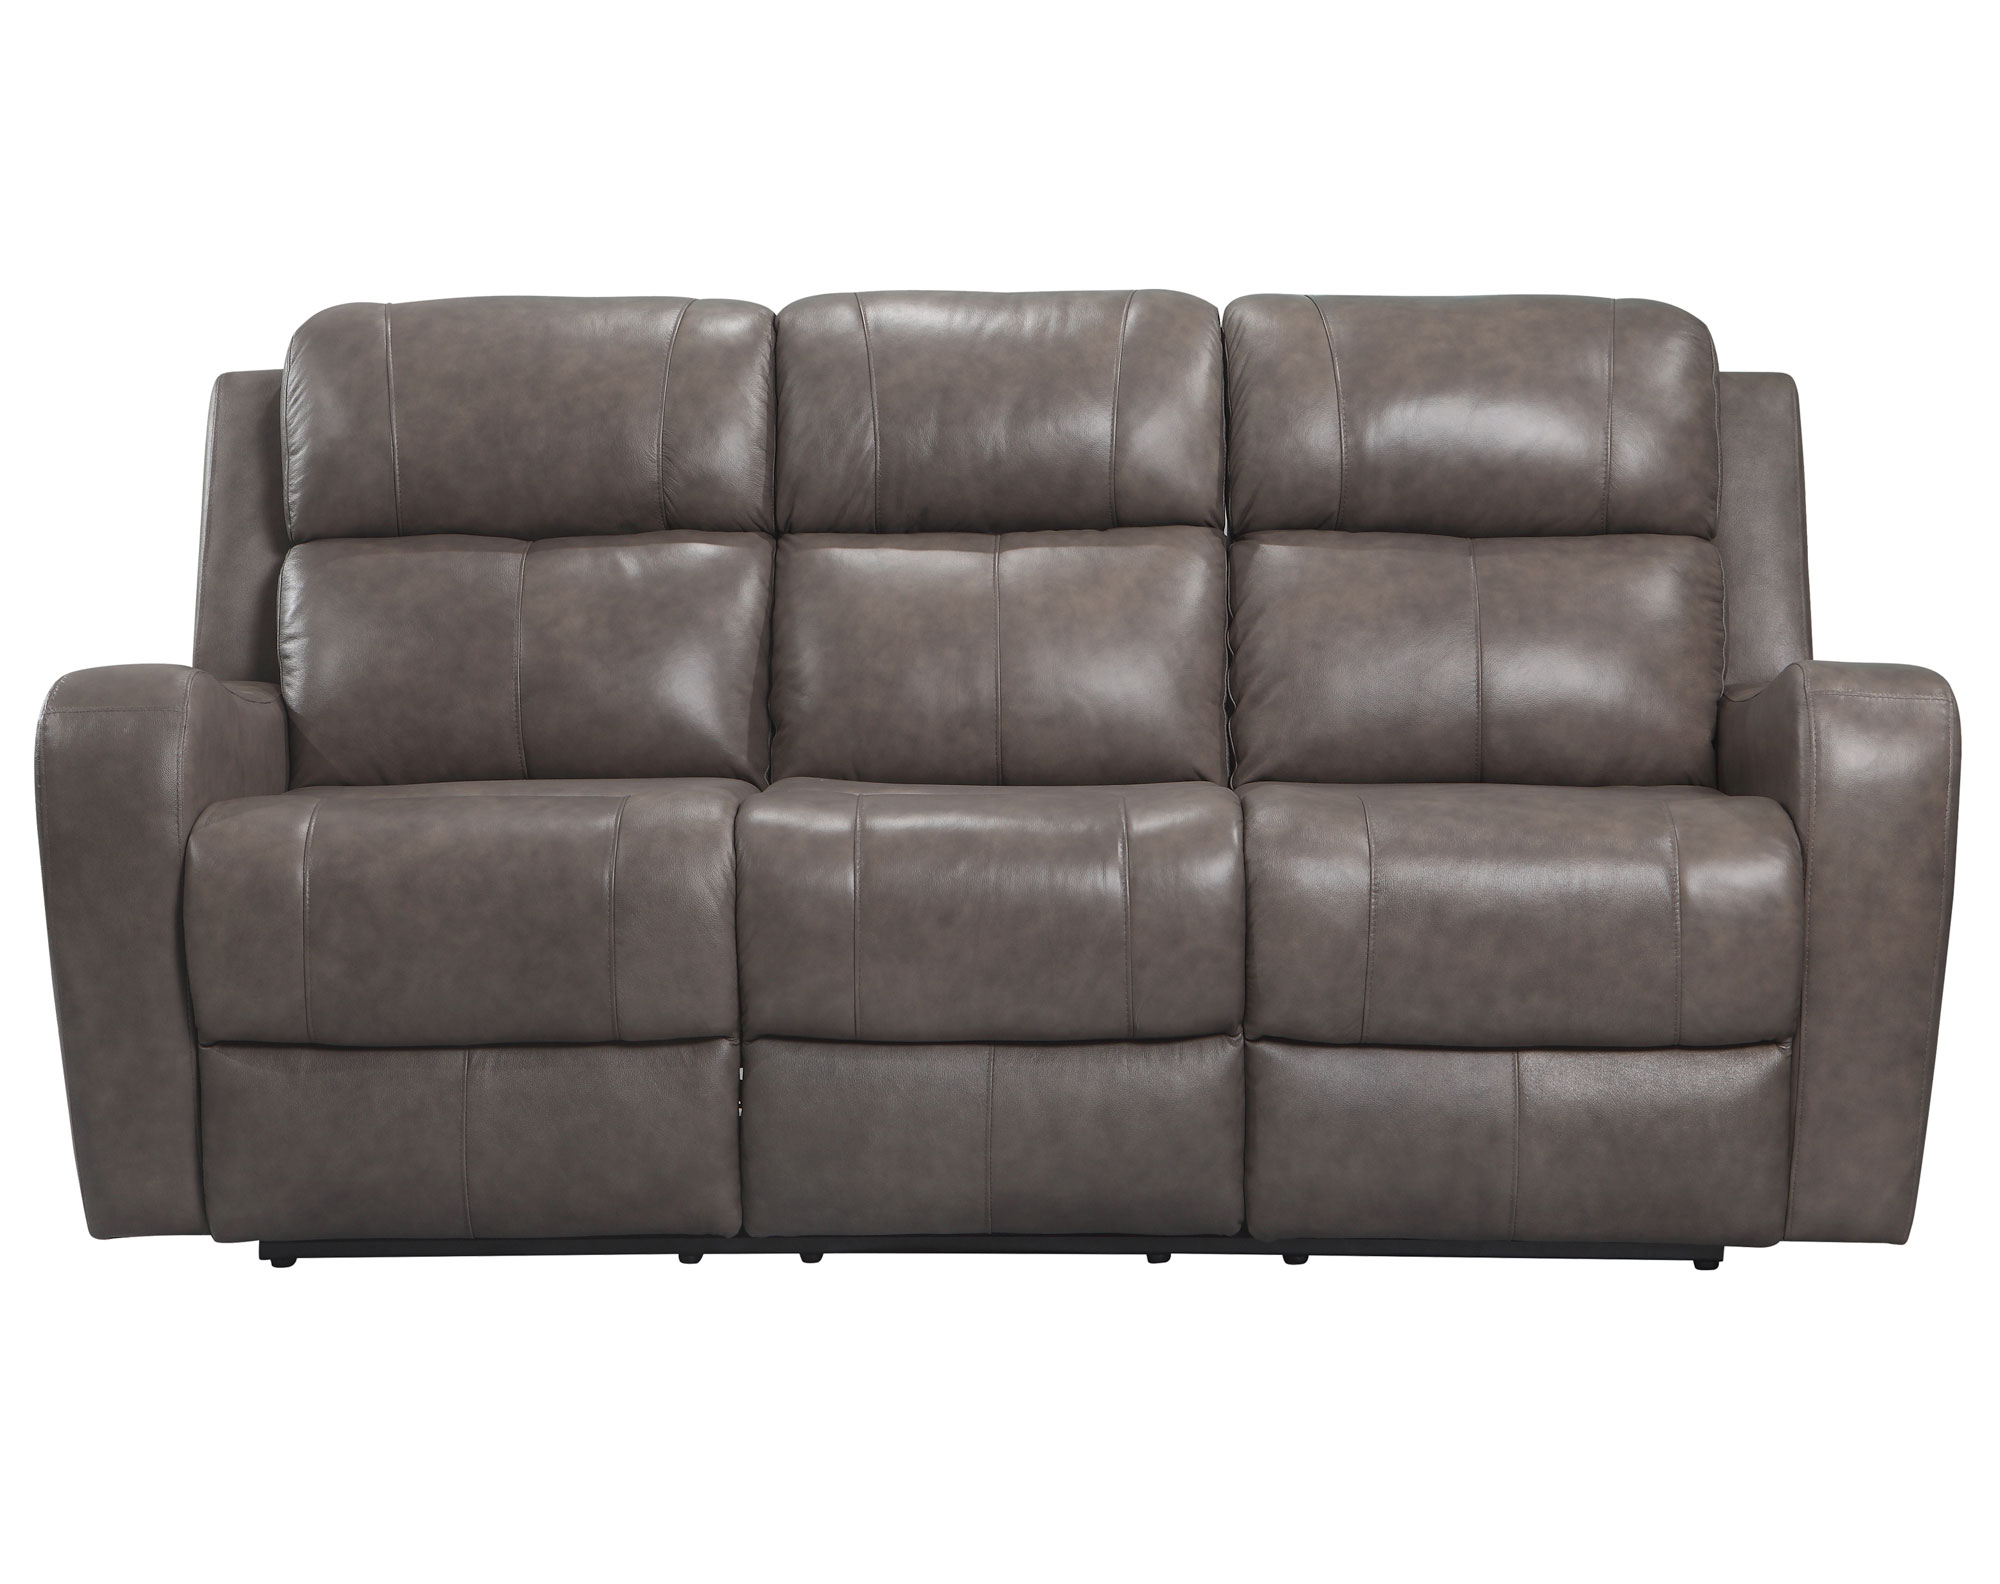 Cortana Power Leather Reclining Sofa (Stone) | Sofas and Sectionals